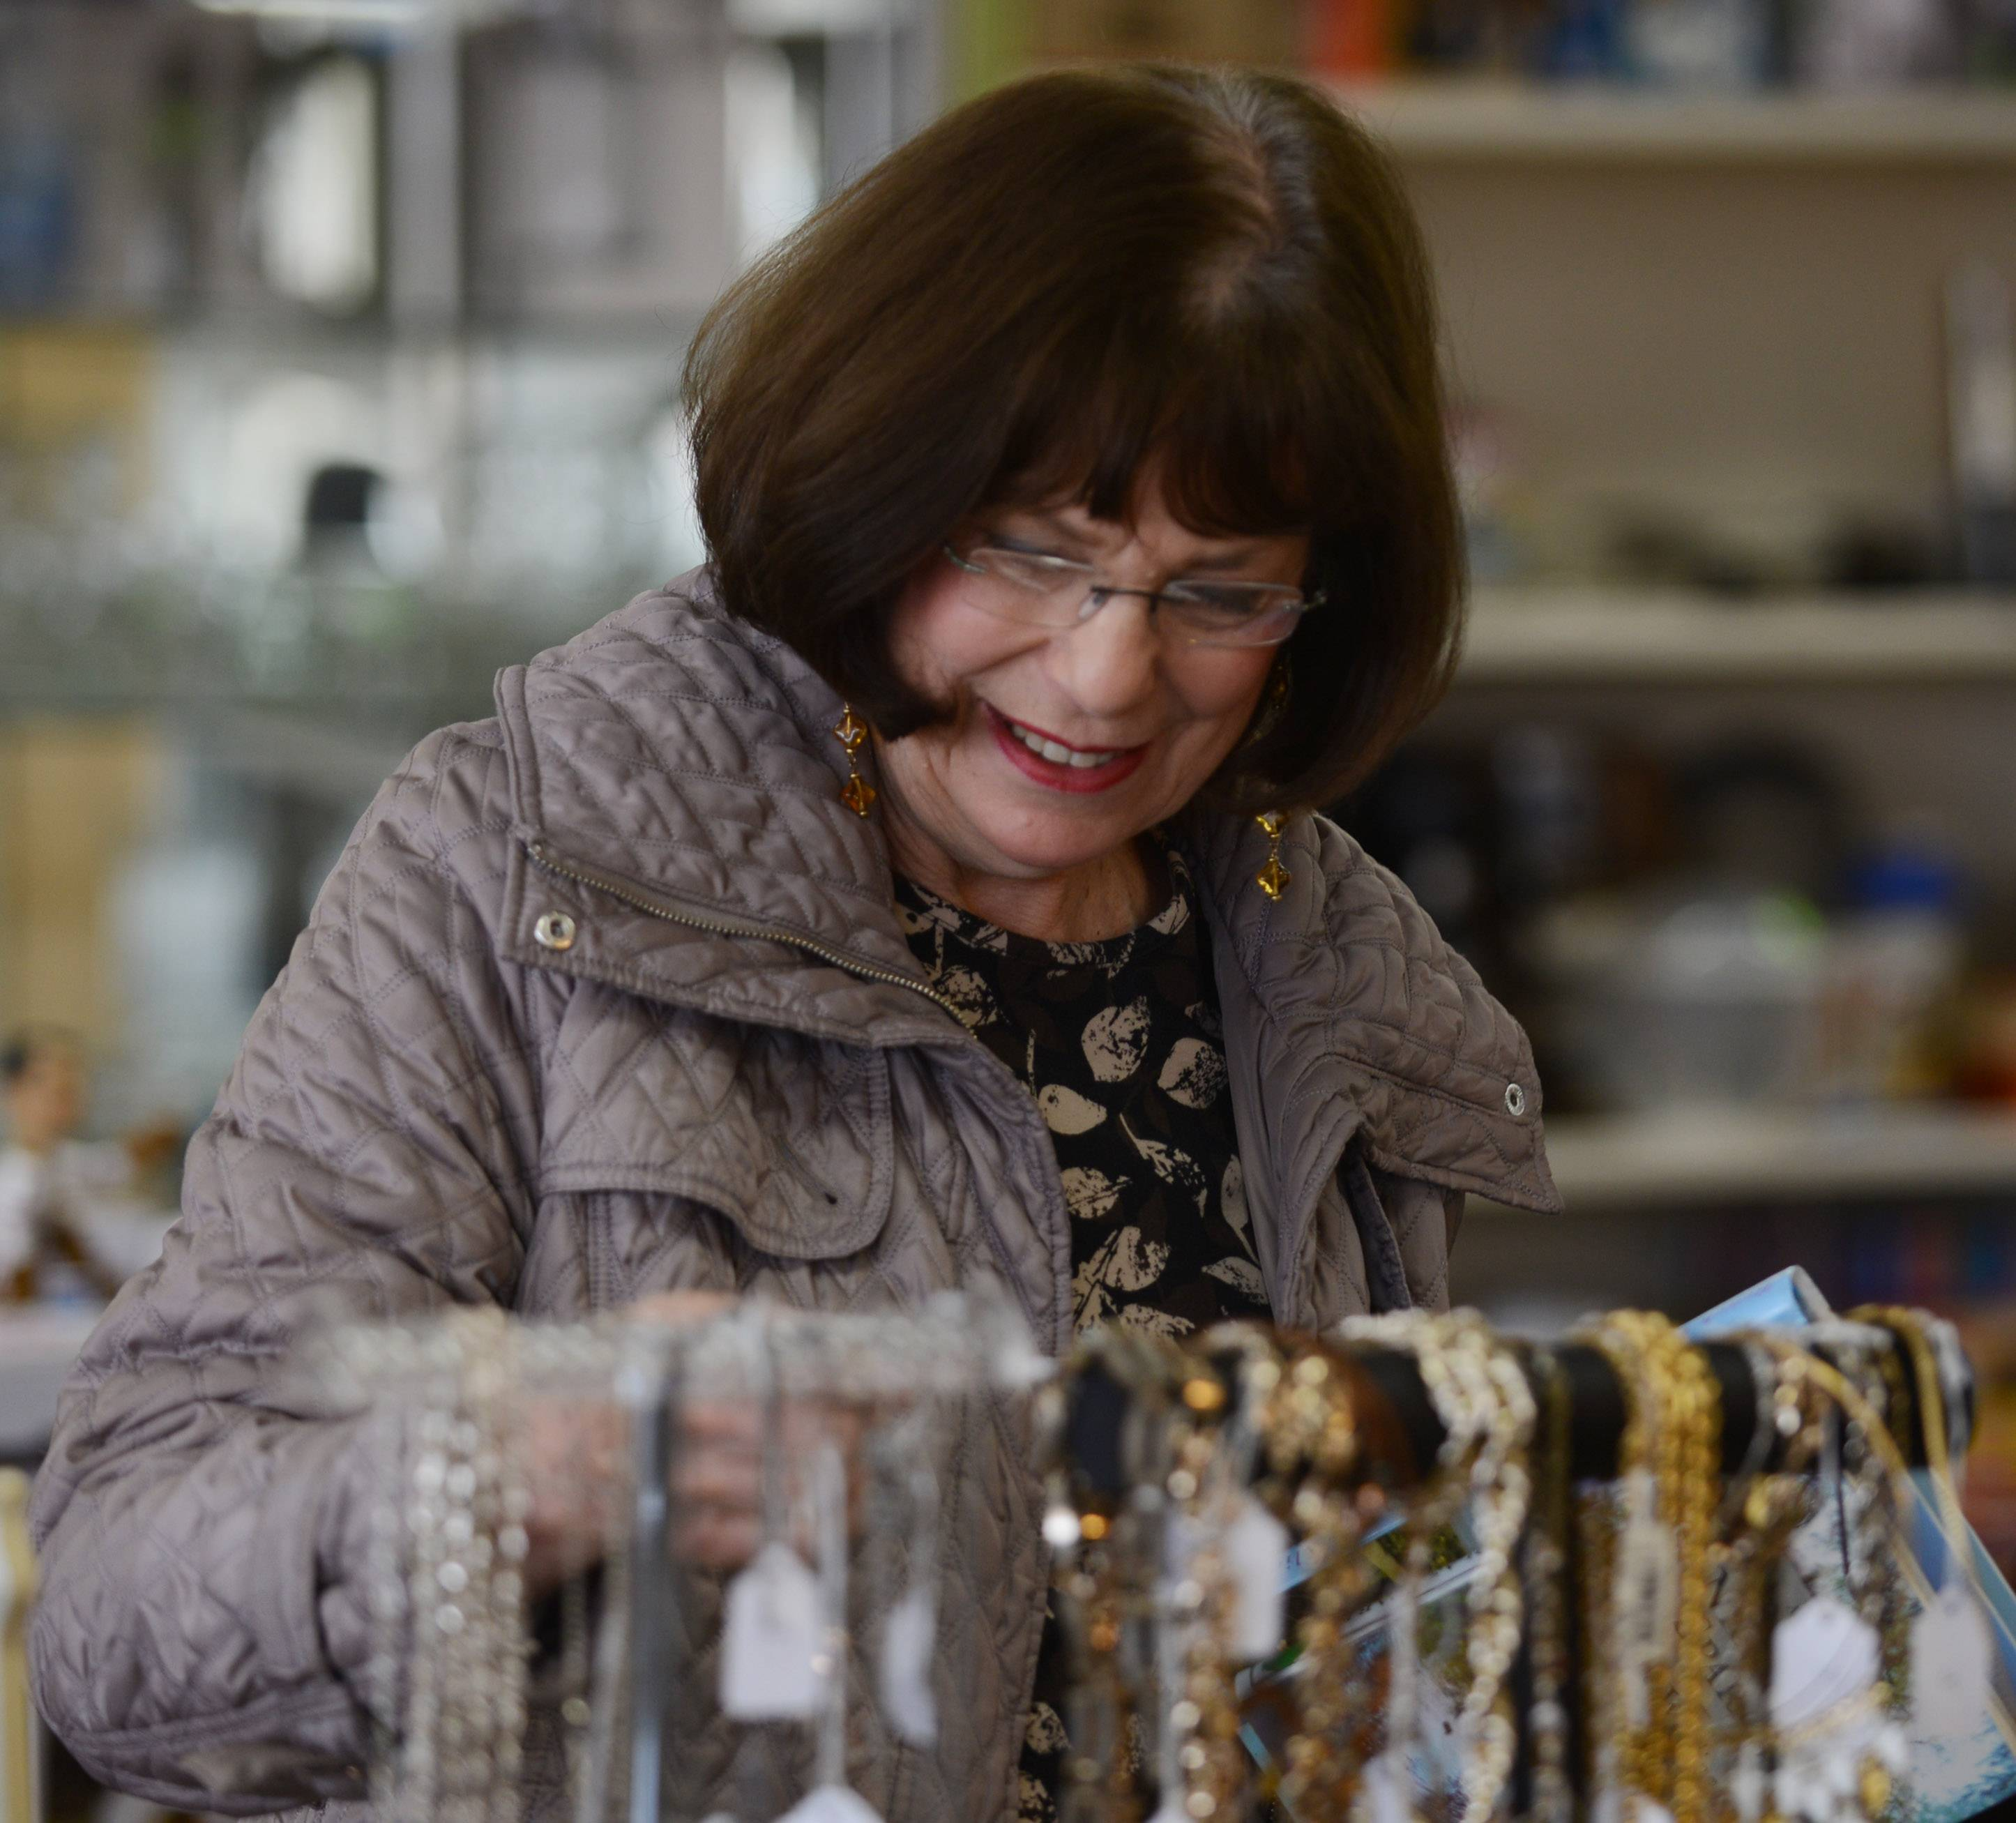 Joanne Kluck of Elk Grove Village views jewelry items during the grand reopening of Shelter, Inc.'s Schaumburg thrift shop Saturday.